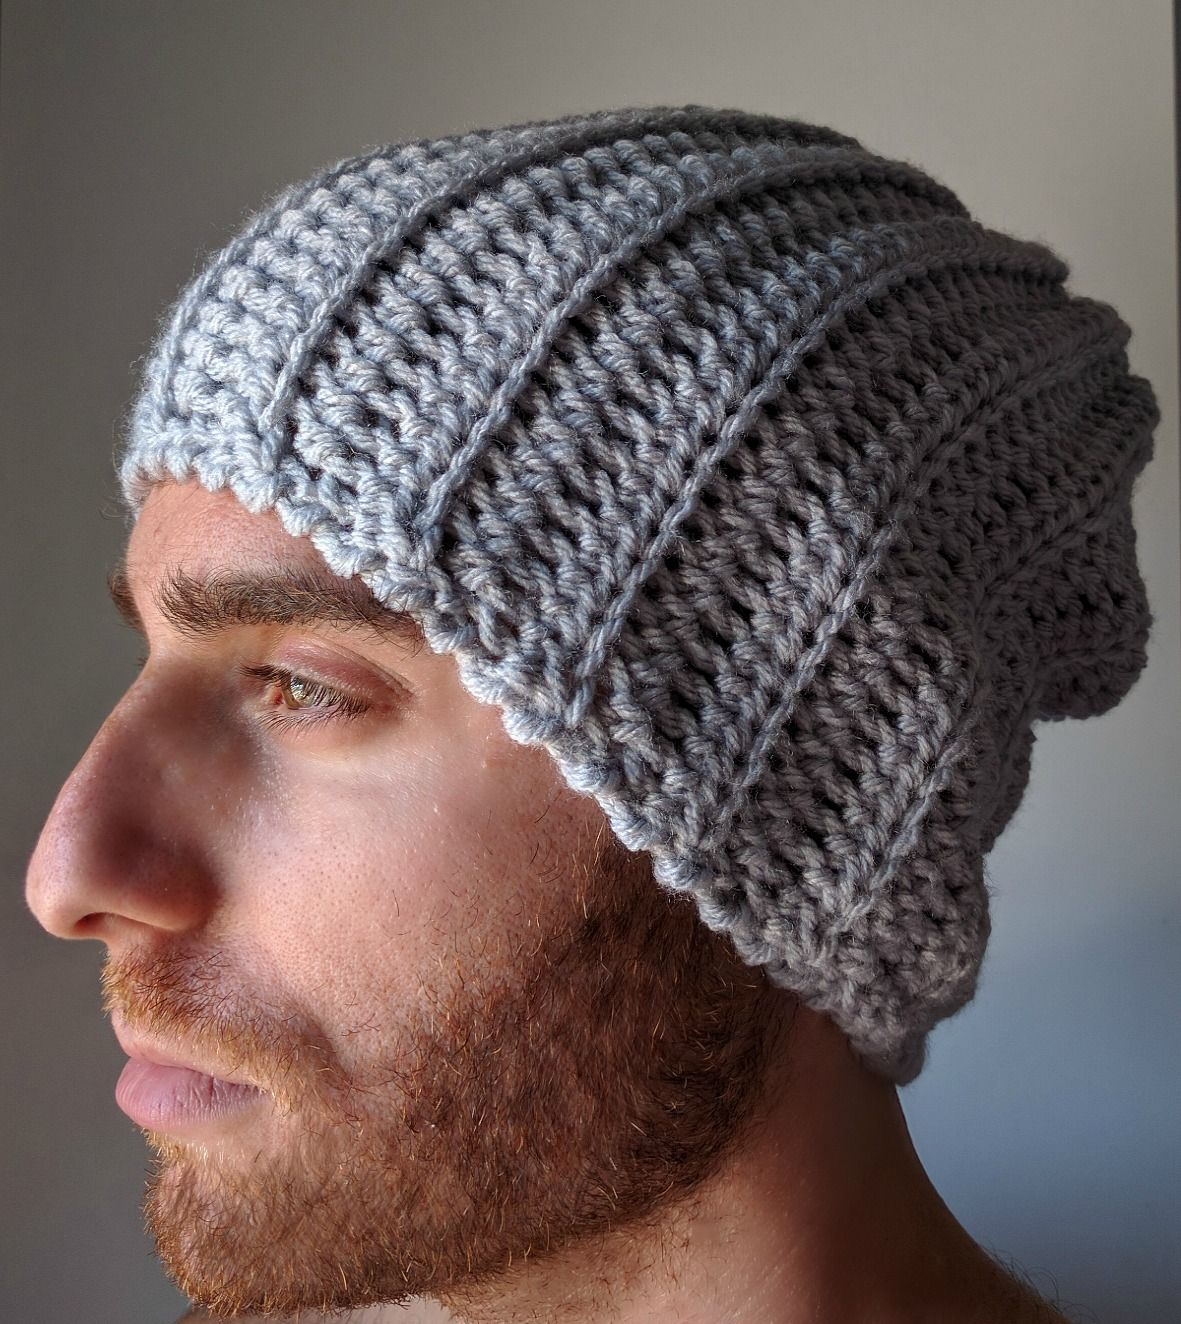 Tips for Crafting for Men | Hat patterns | Pinterest | Crocheting ...